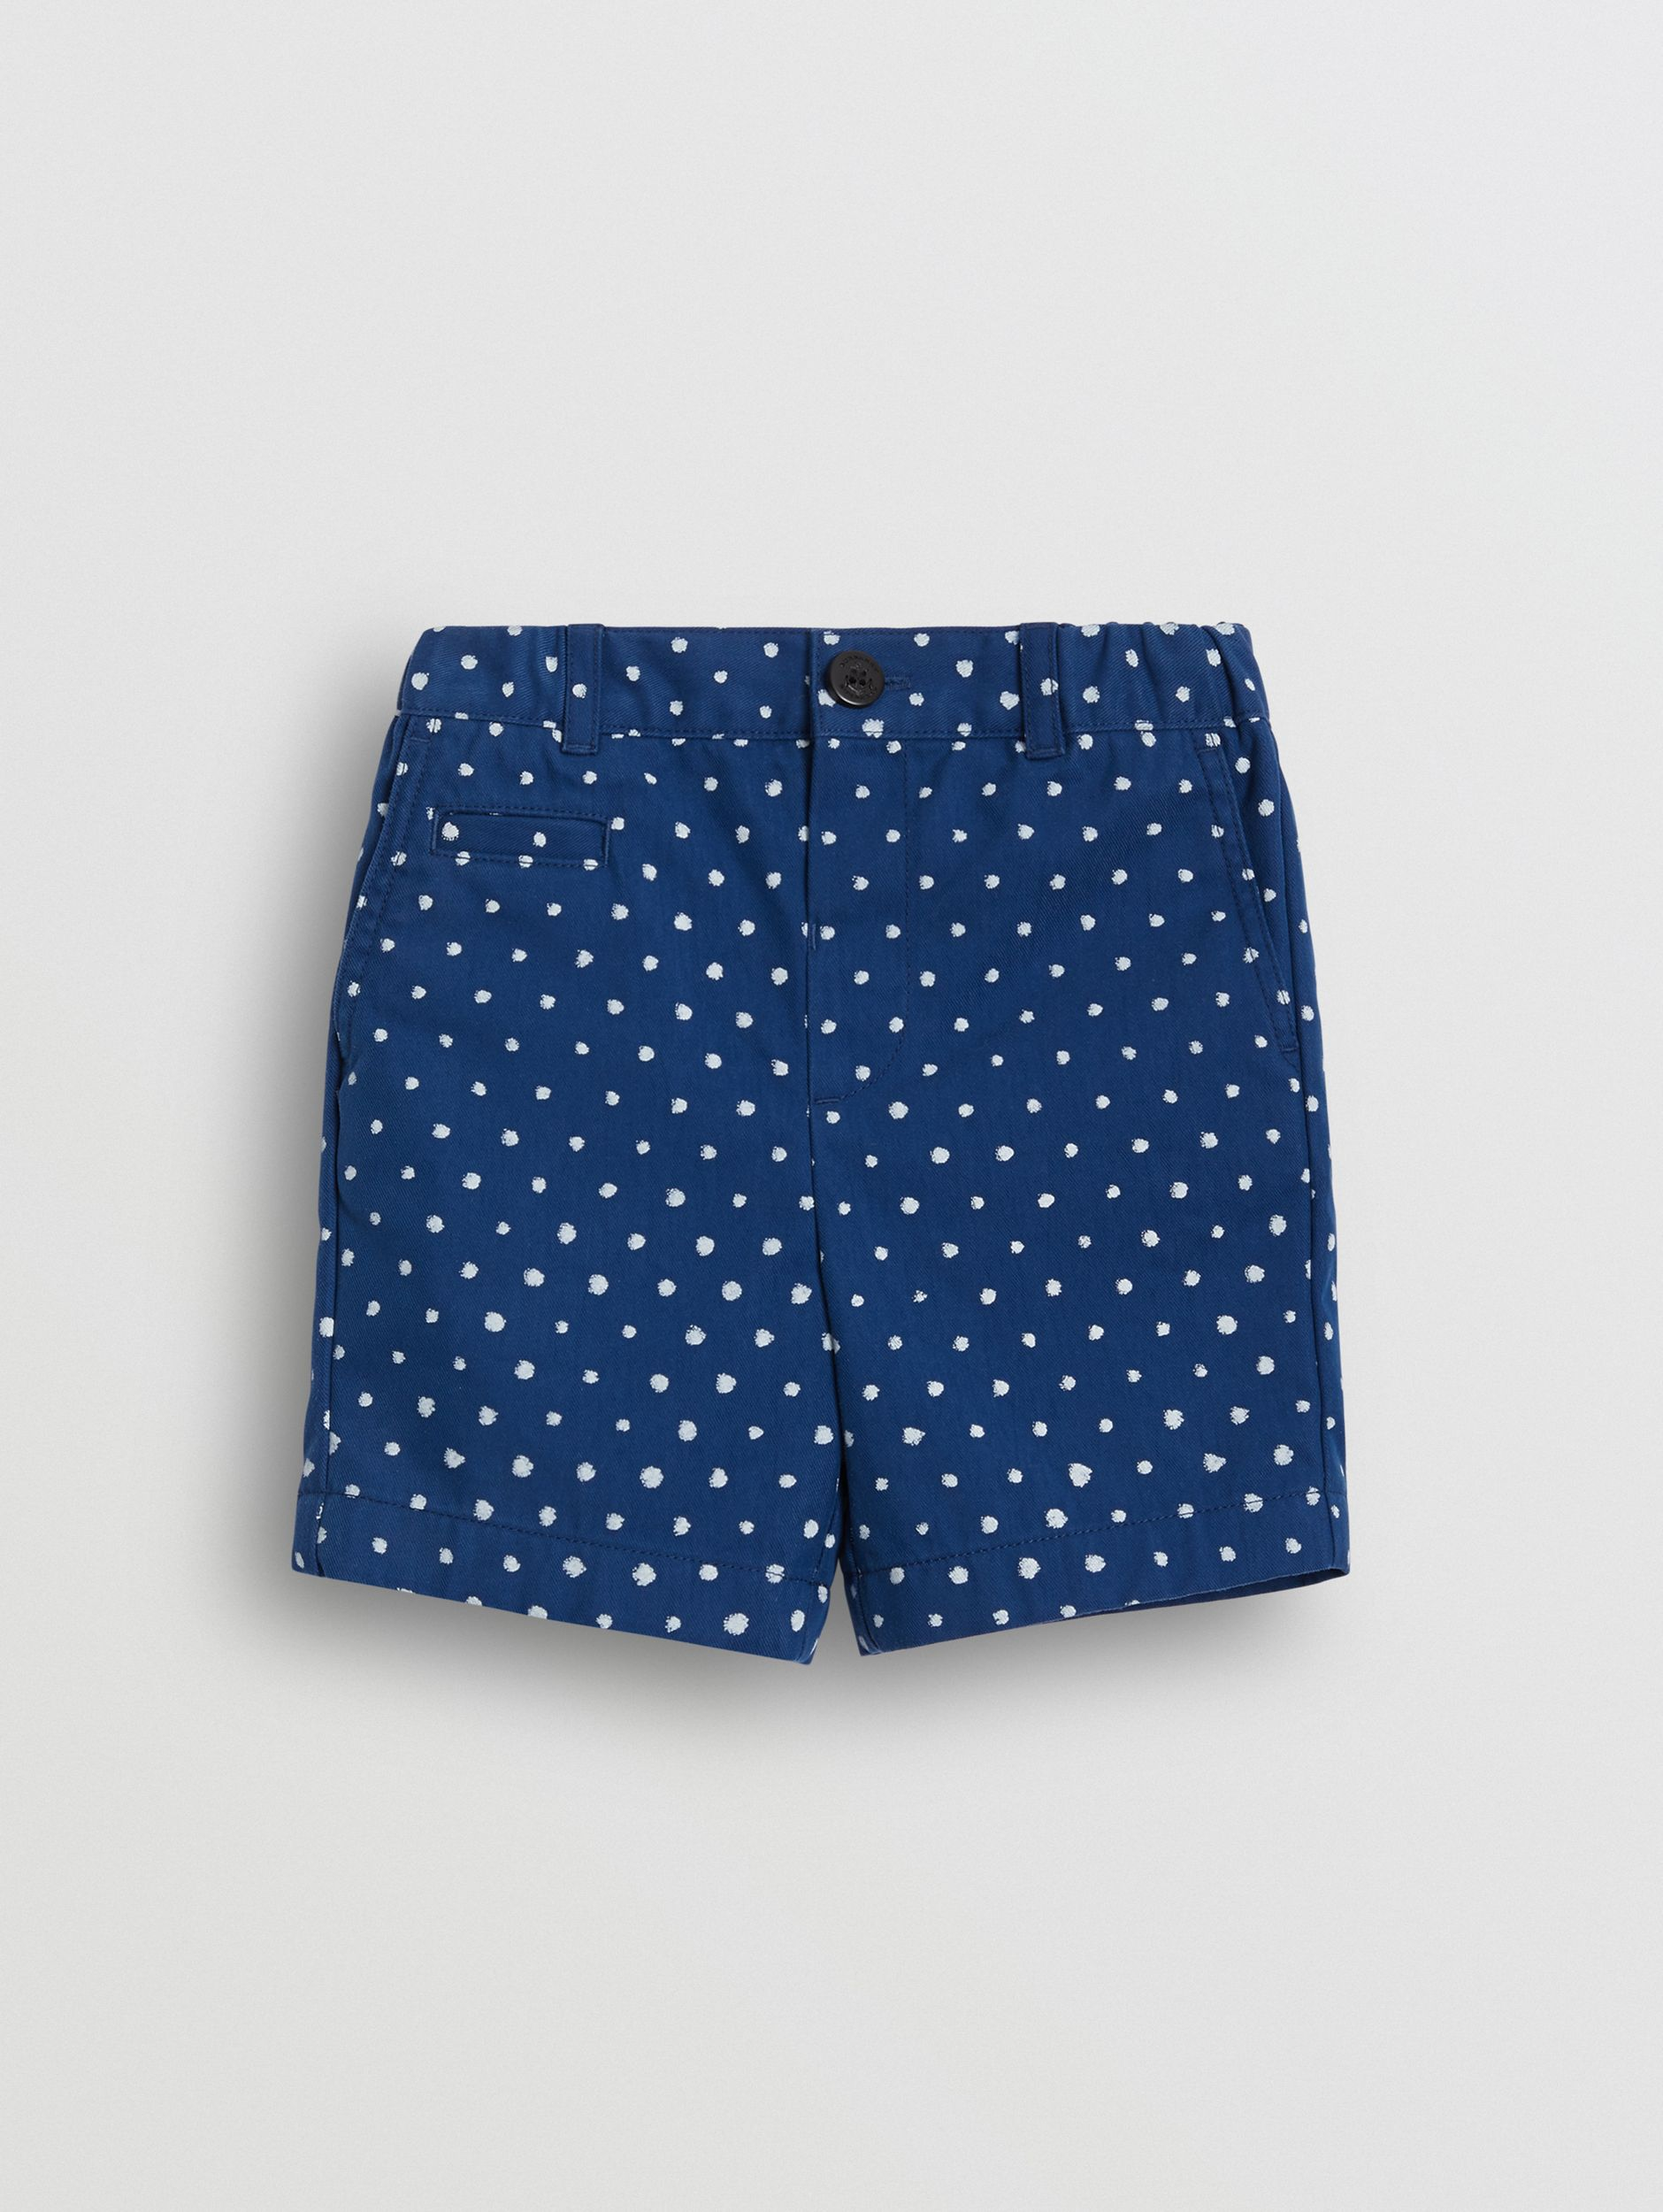 Spot Print Cotton Blend Shorts in Bright Navy - Children | Burberry - 1